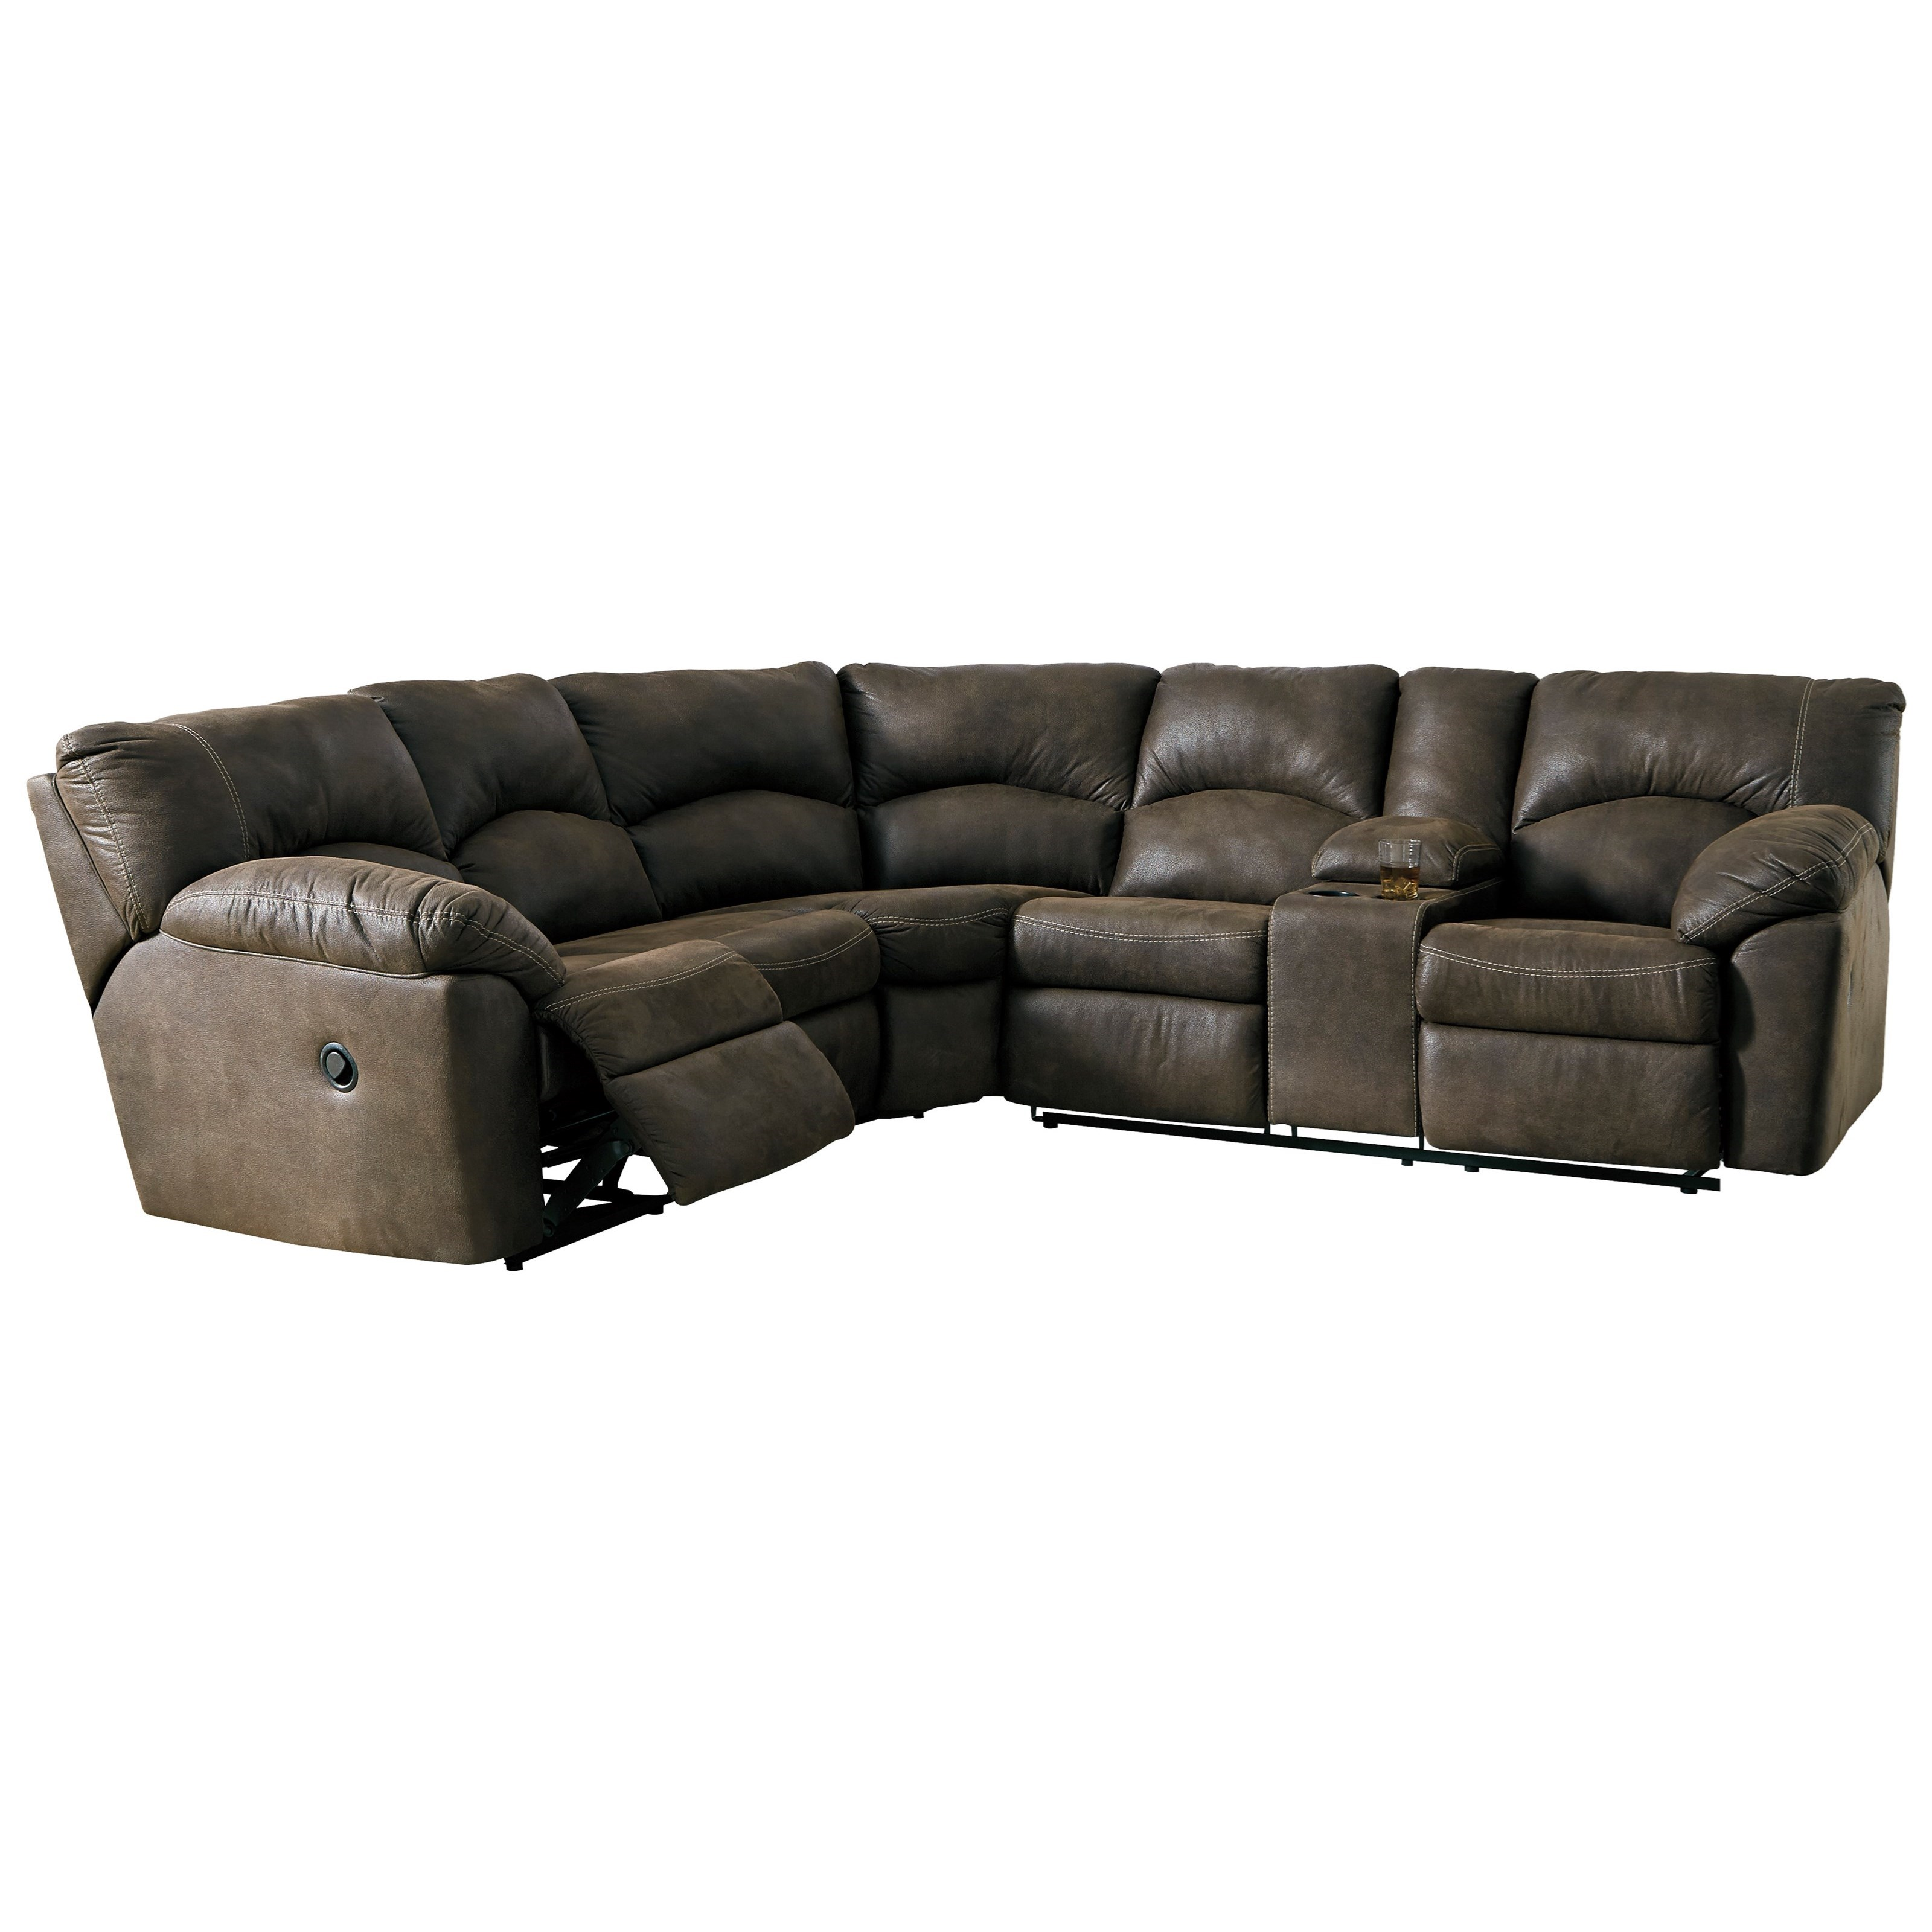 2-Piece Reclining Corner Sectional